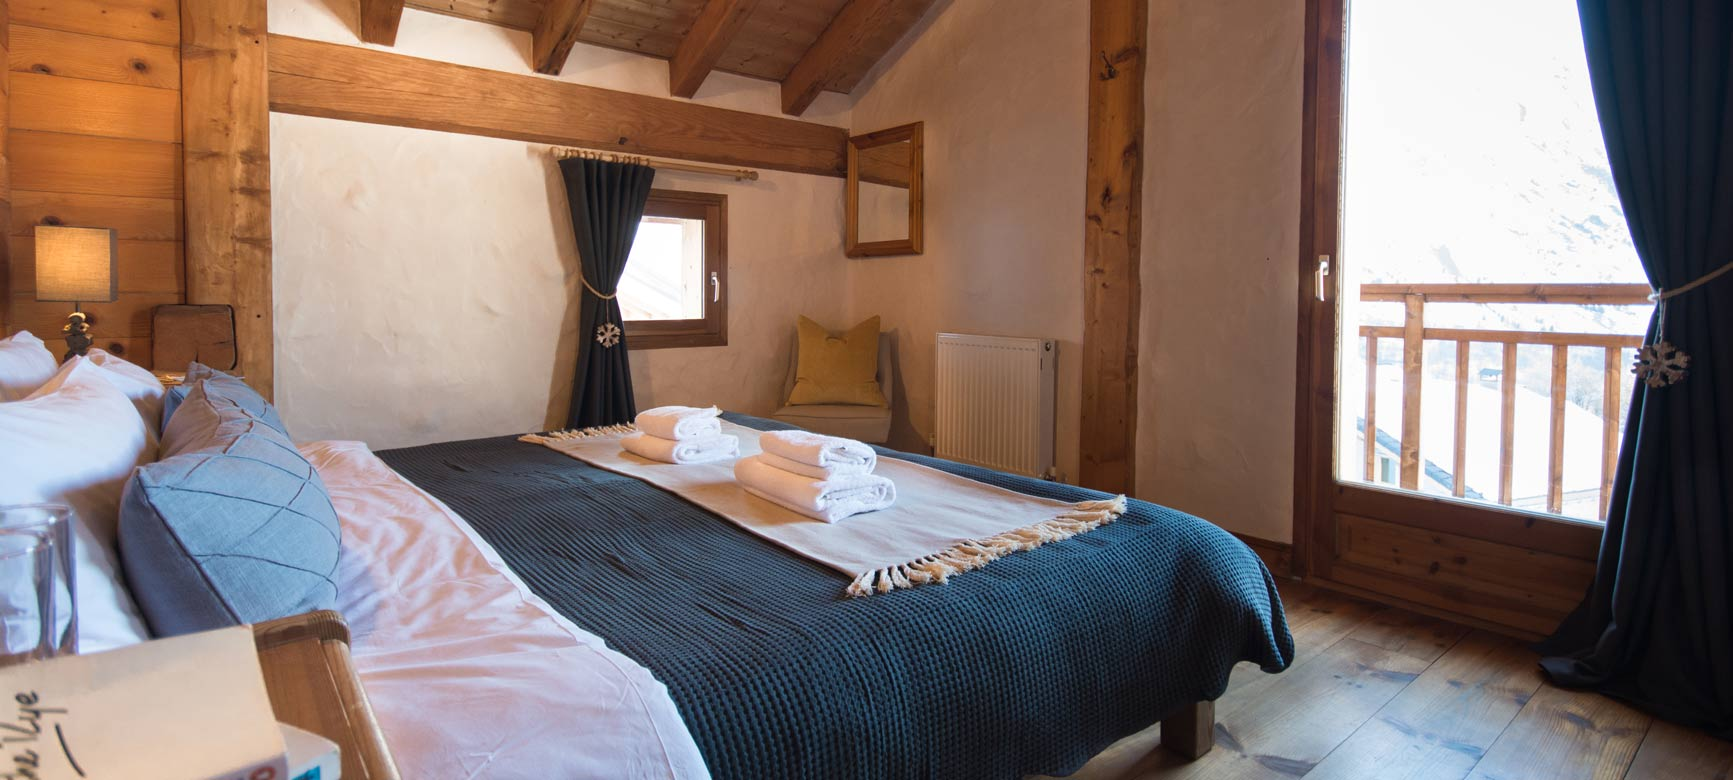 Luxuriously cosy bedrooms, all with en-suite facilities